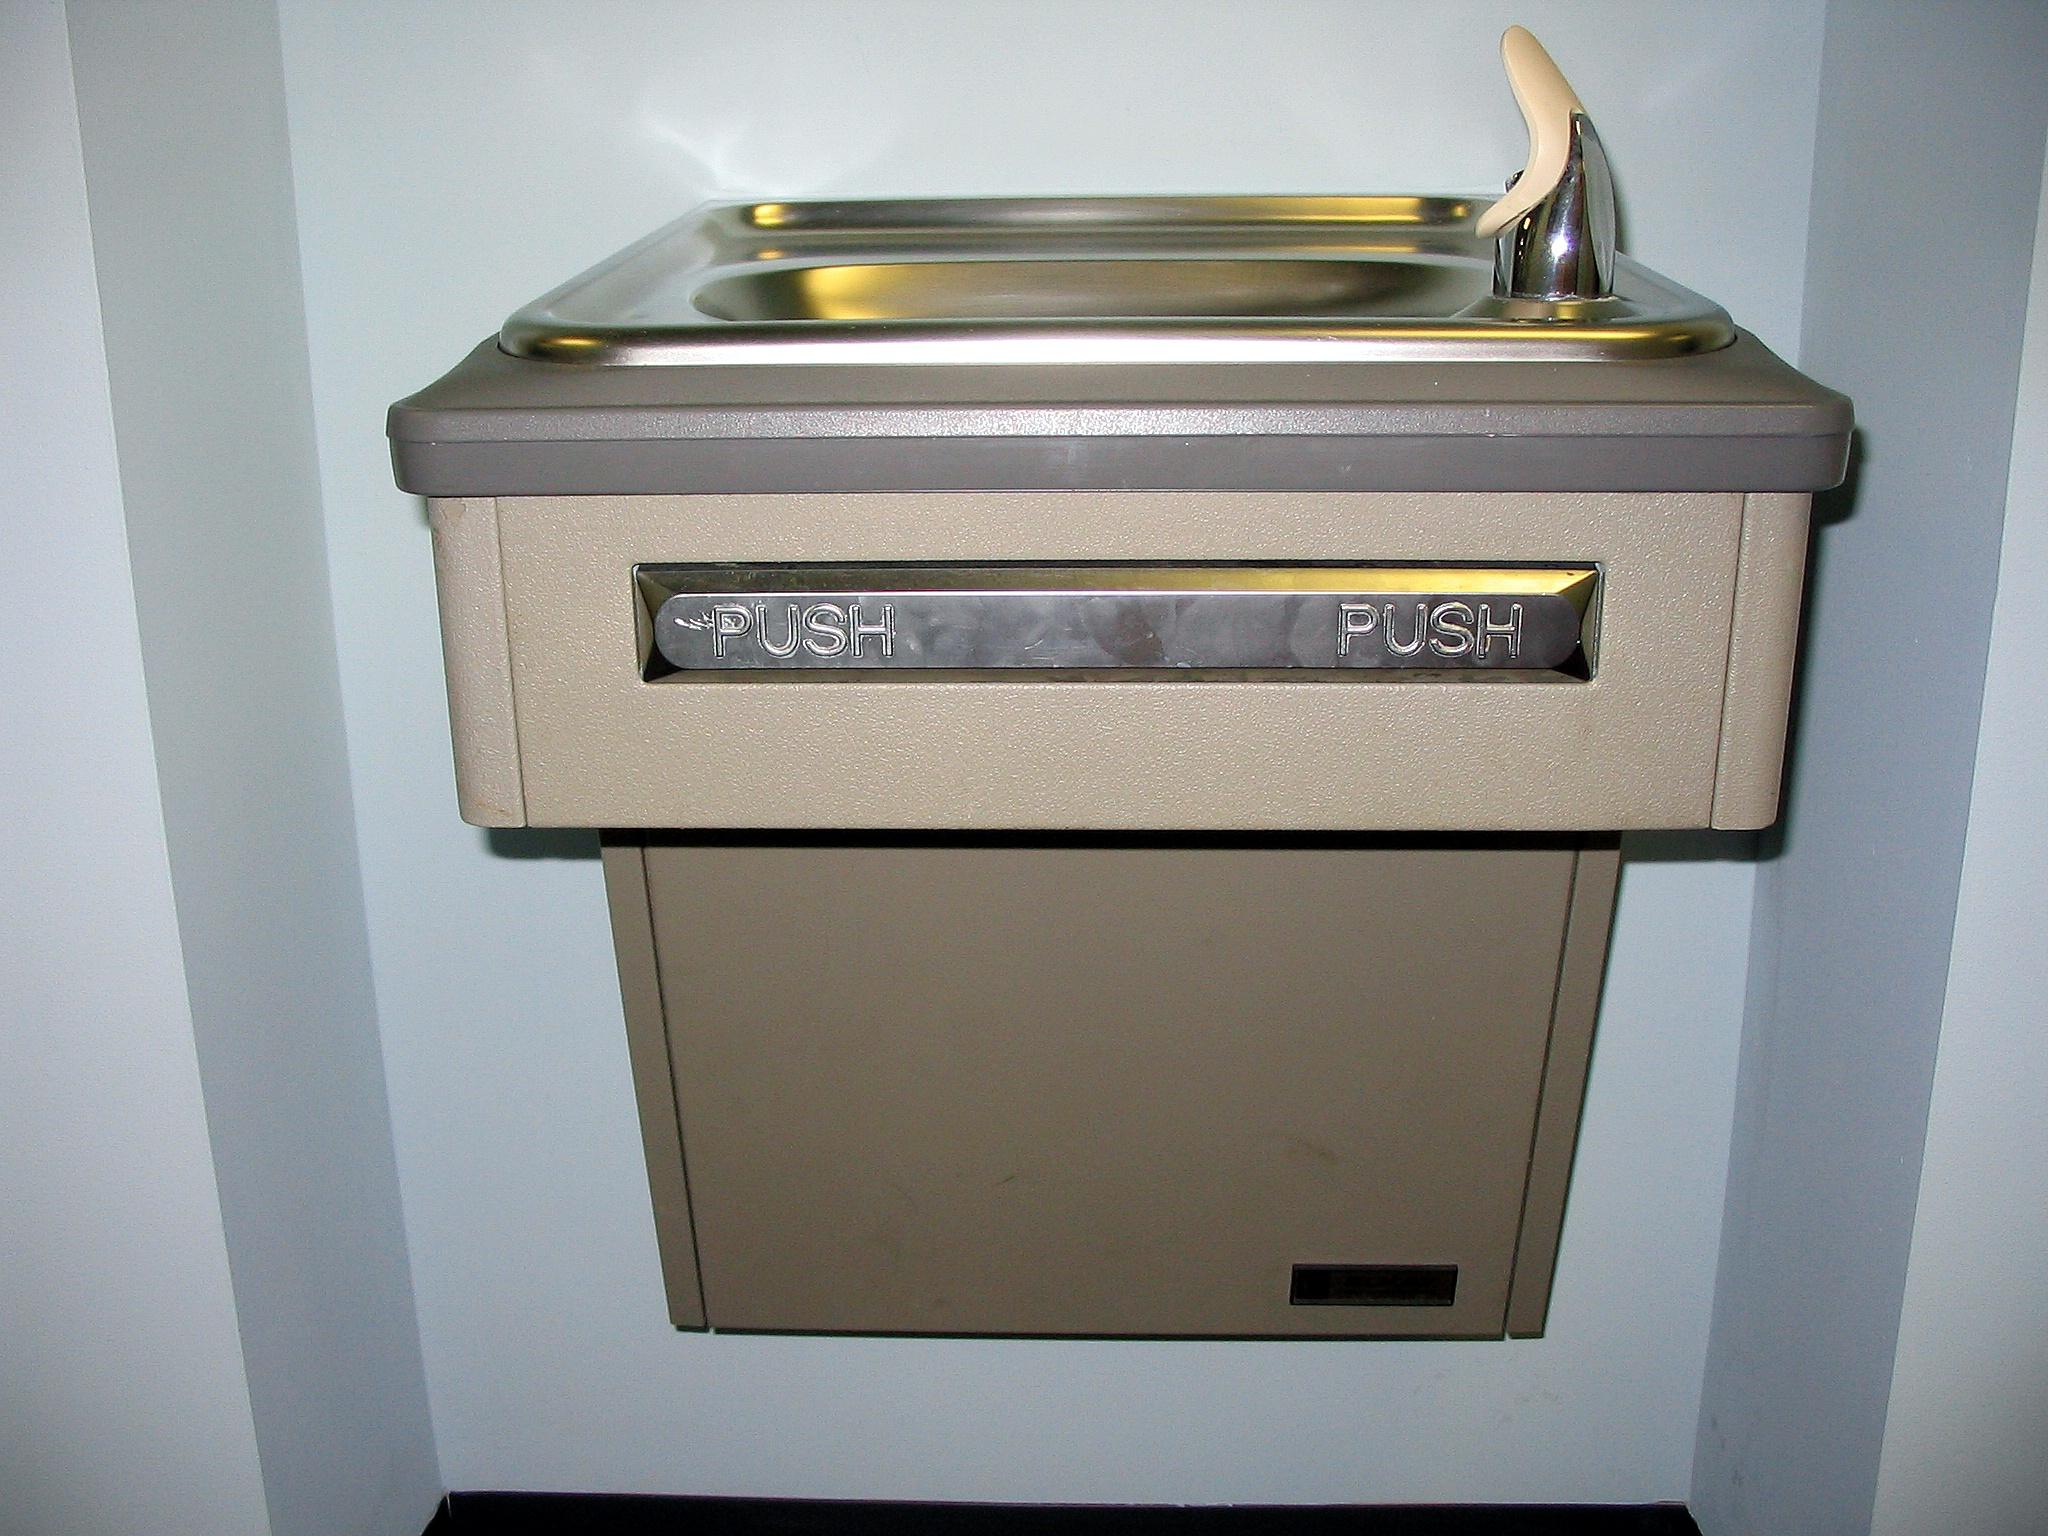 Water fountains schools - Grand Rapids Public Schools To Test Drinking Water For Lead